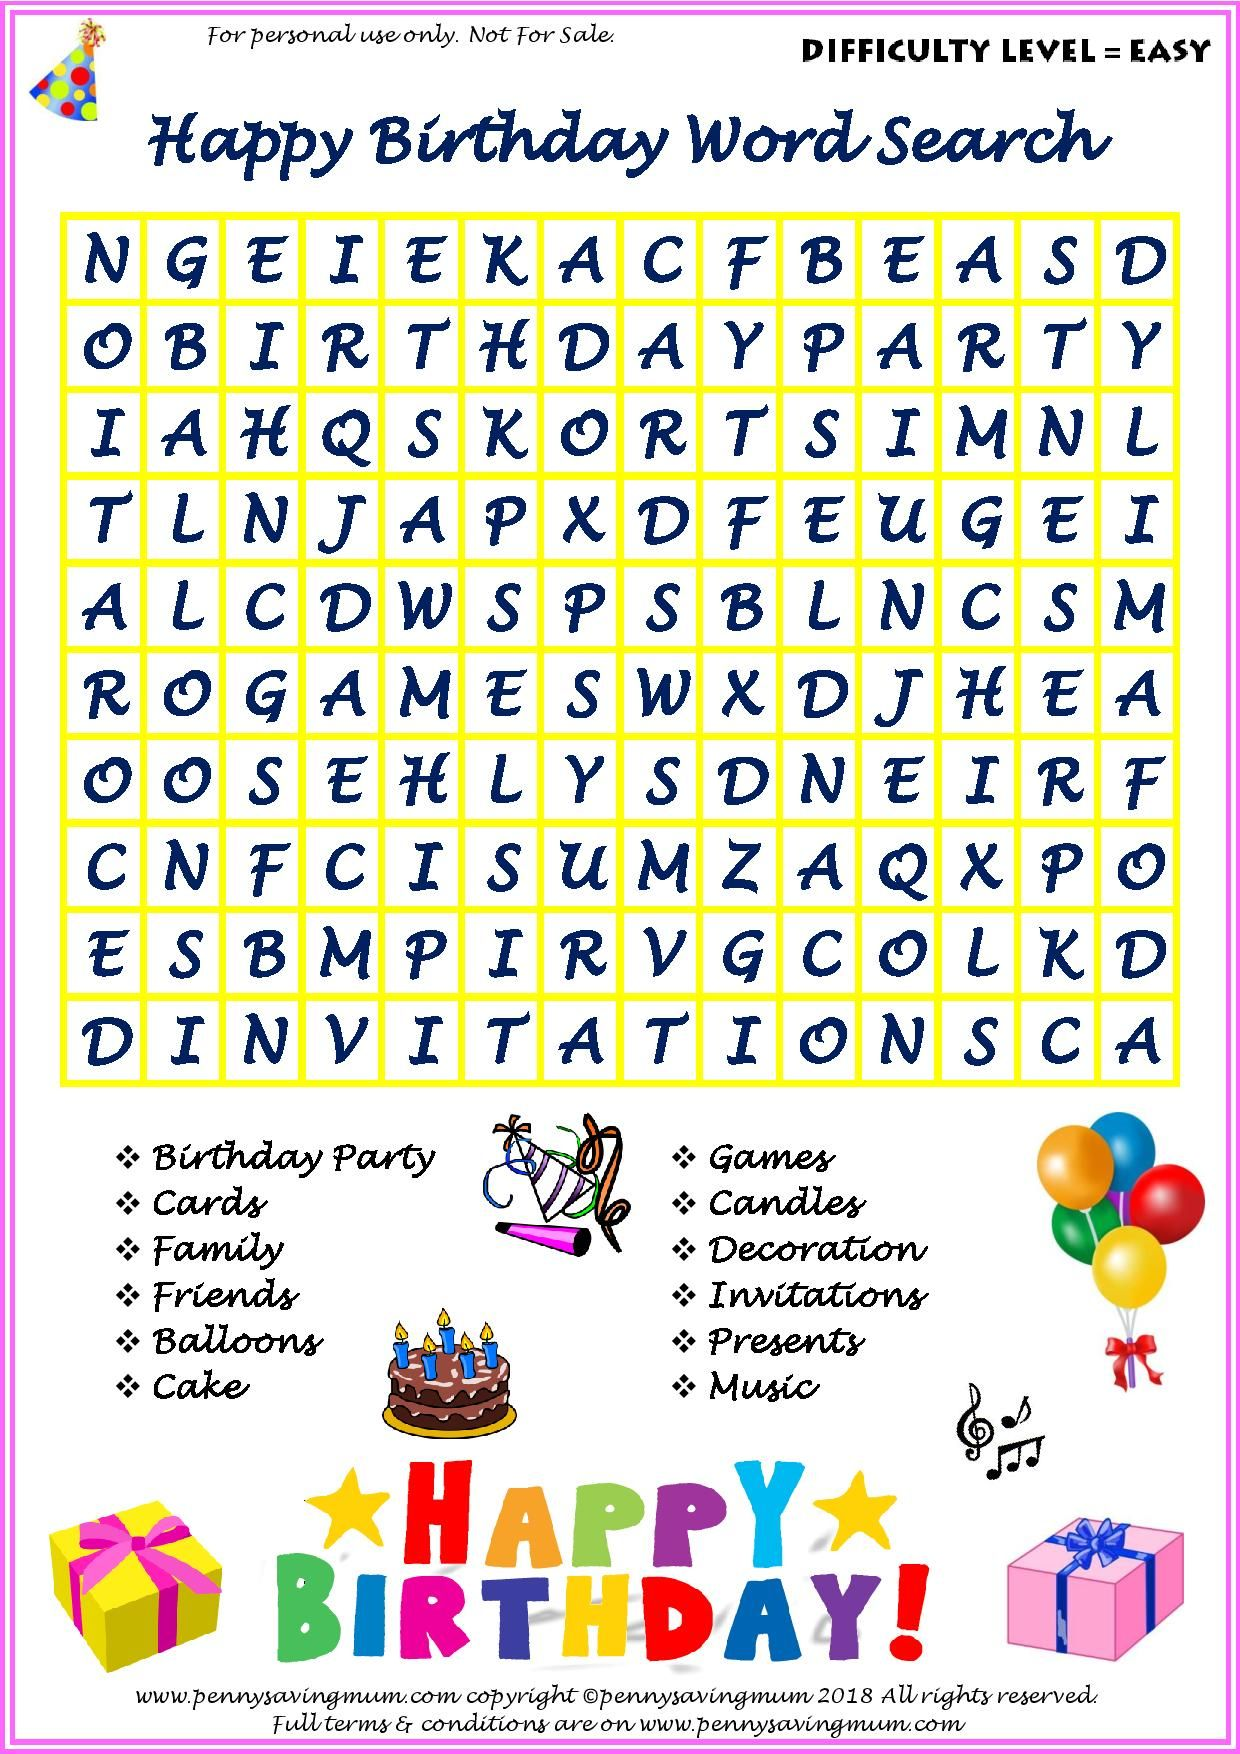 Word Search Happy Birthday Easy Version